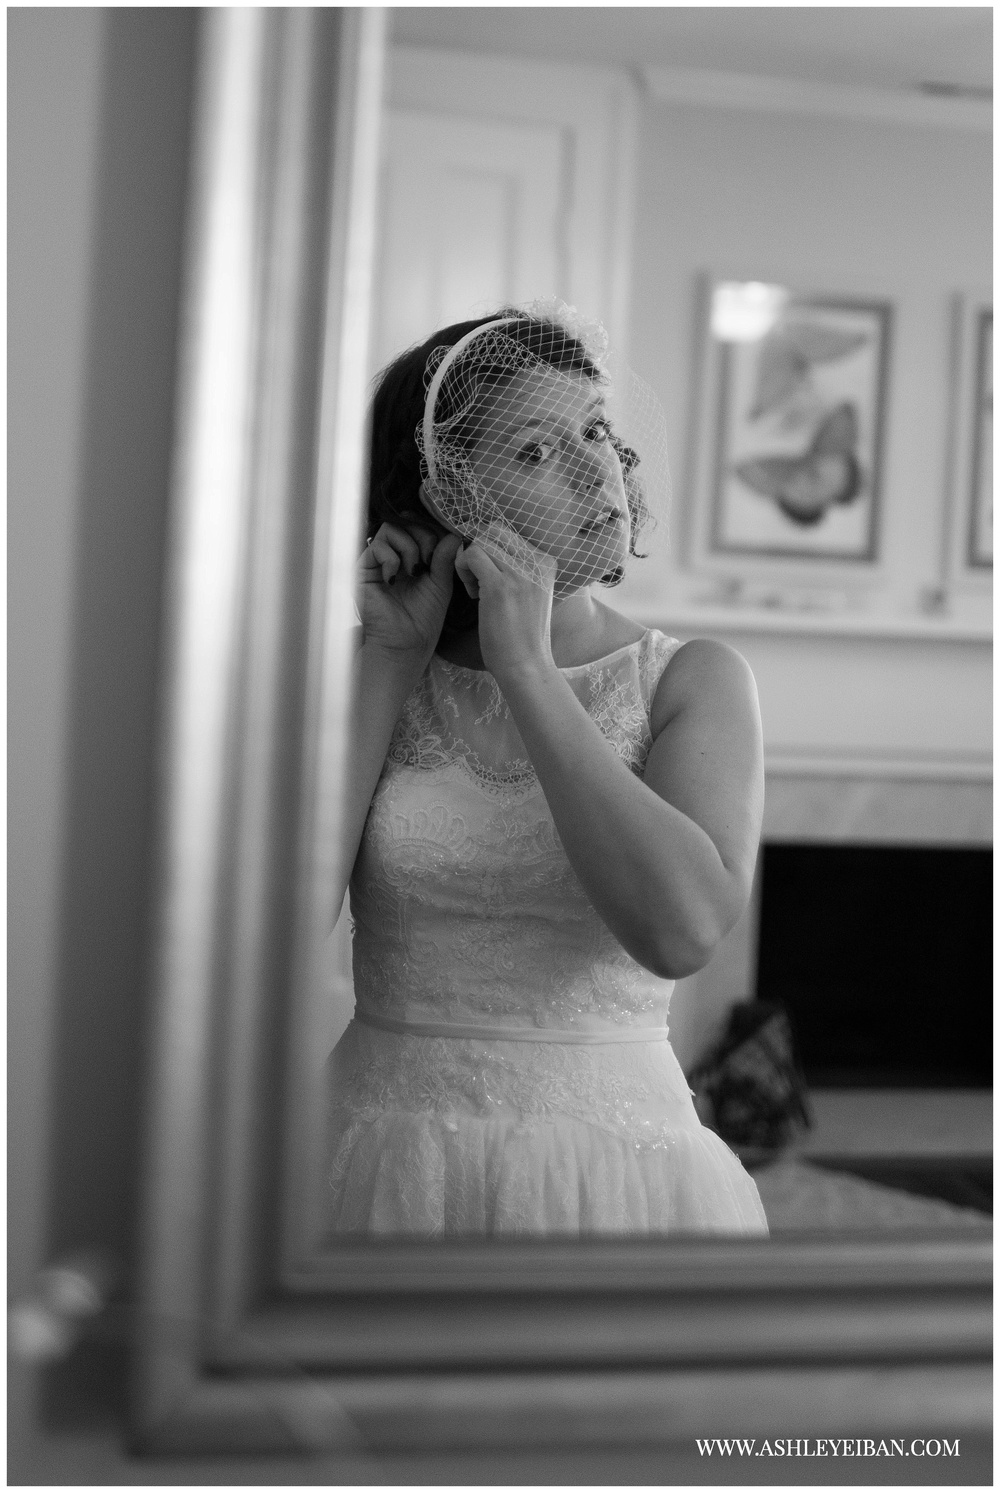 Lynchburg, VA Wedding Photographer || Wedding at The Trivium || Central Virginia Wedding Photographer || Ashley Eiban Photography || www.ashleyeiban.com